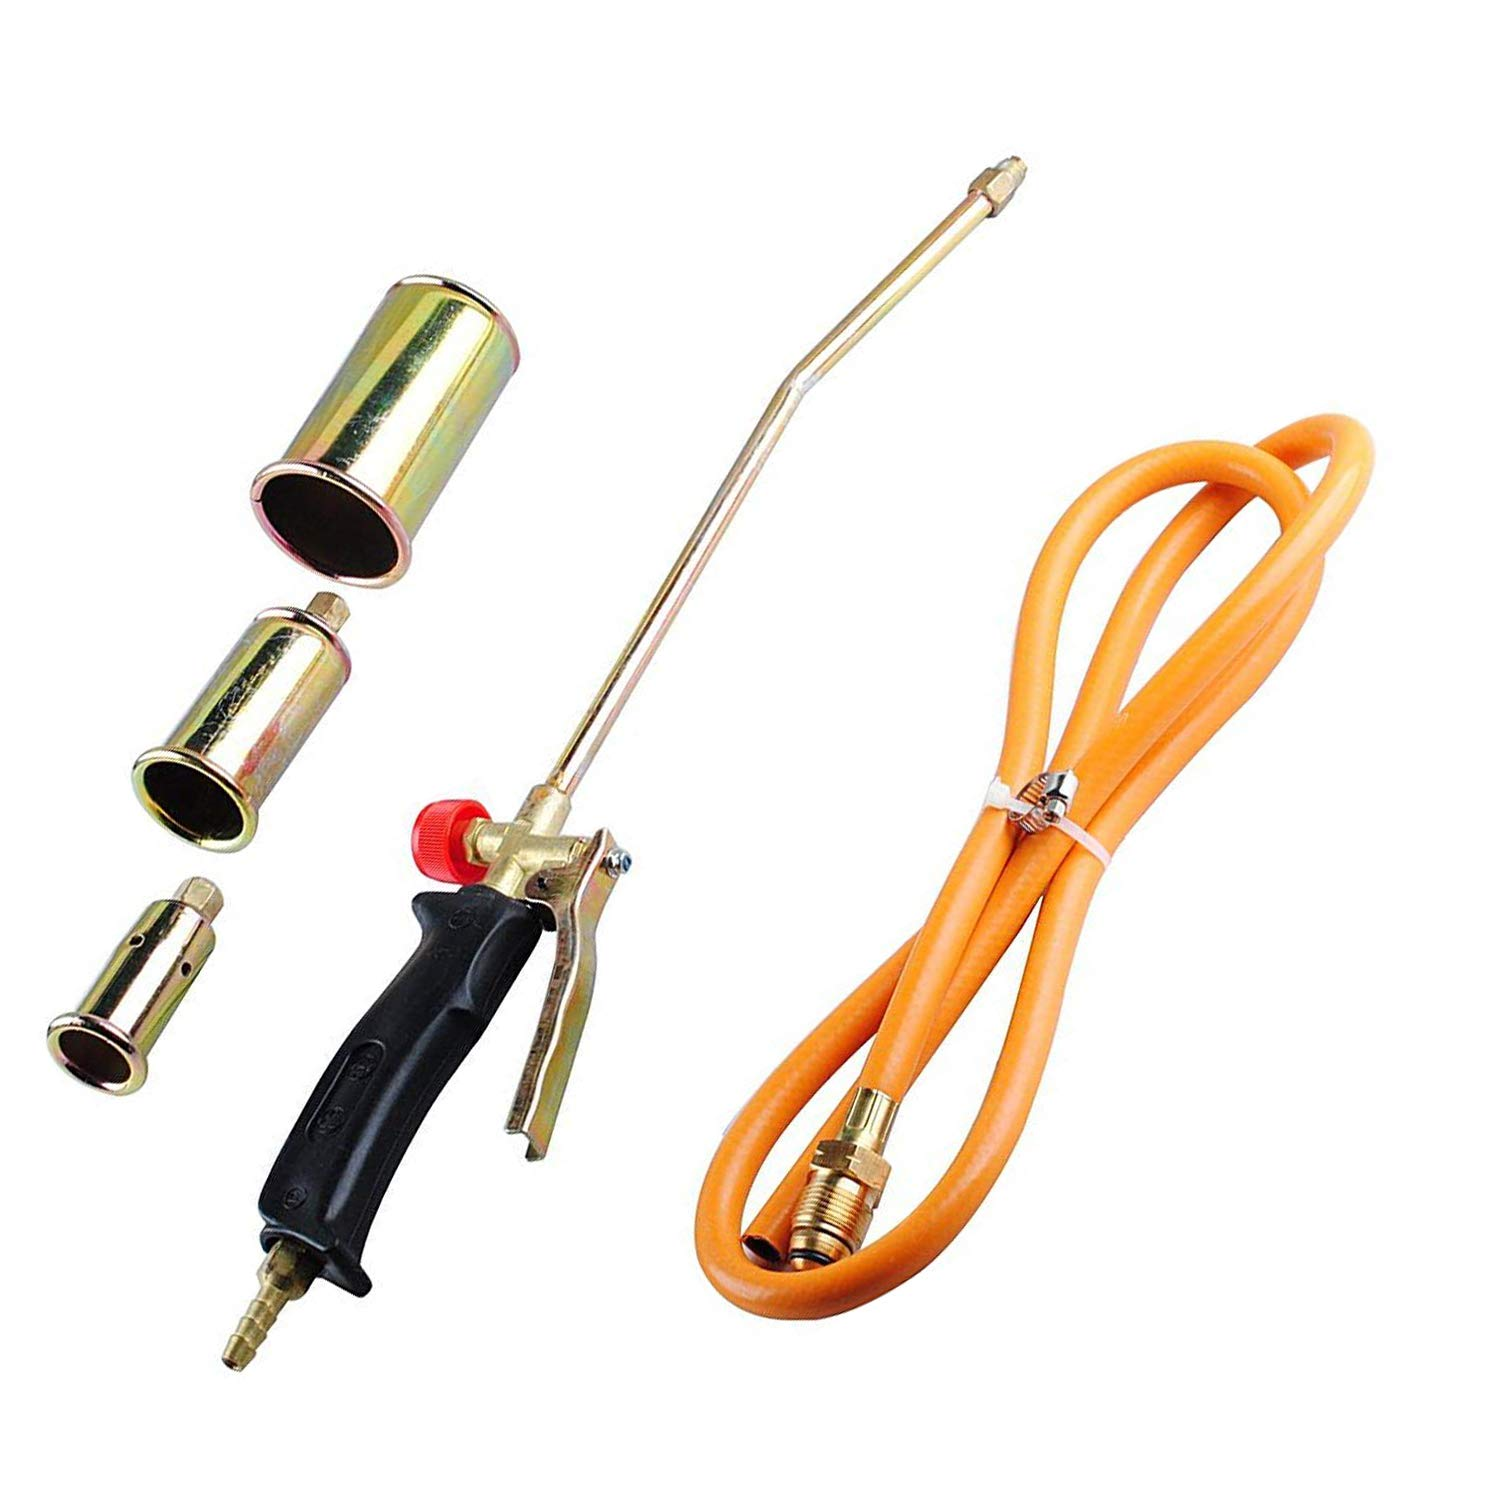 New Portable Propane Weed Torch Burner Fire Starter Ice Melter Melting Roofing